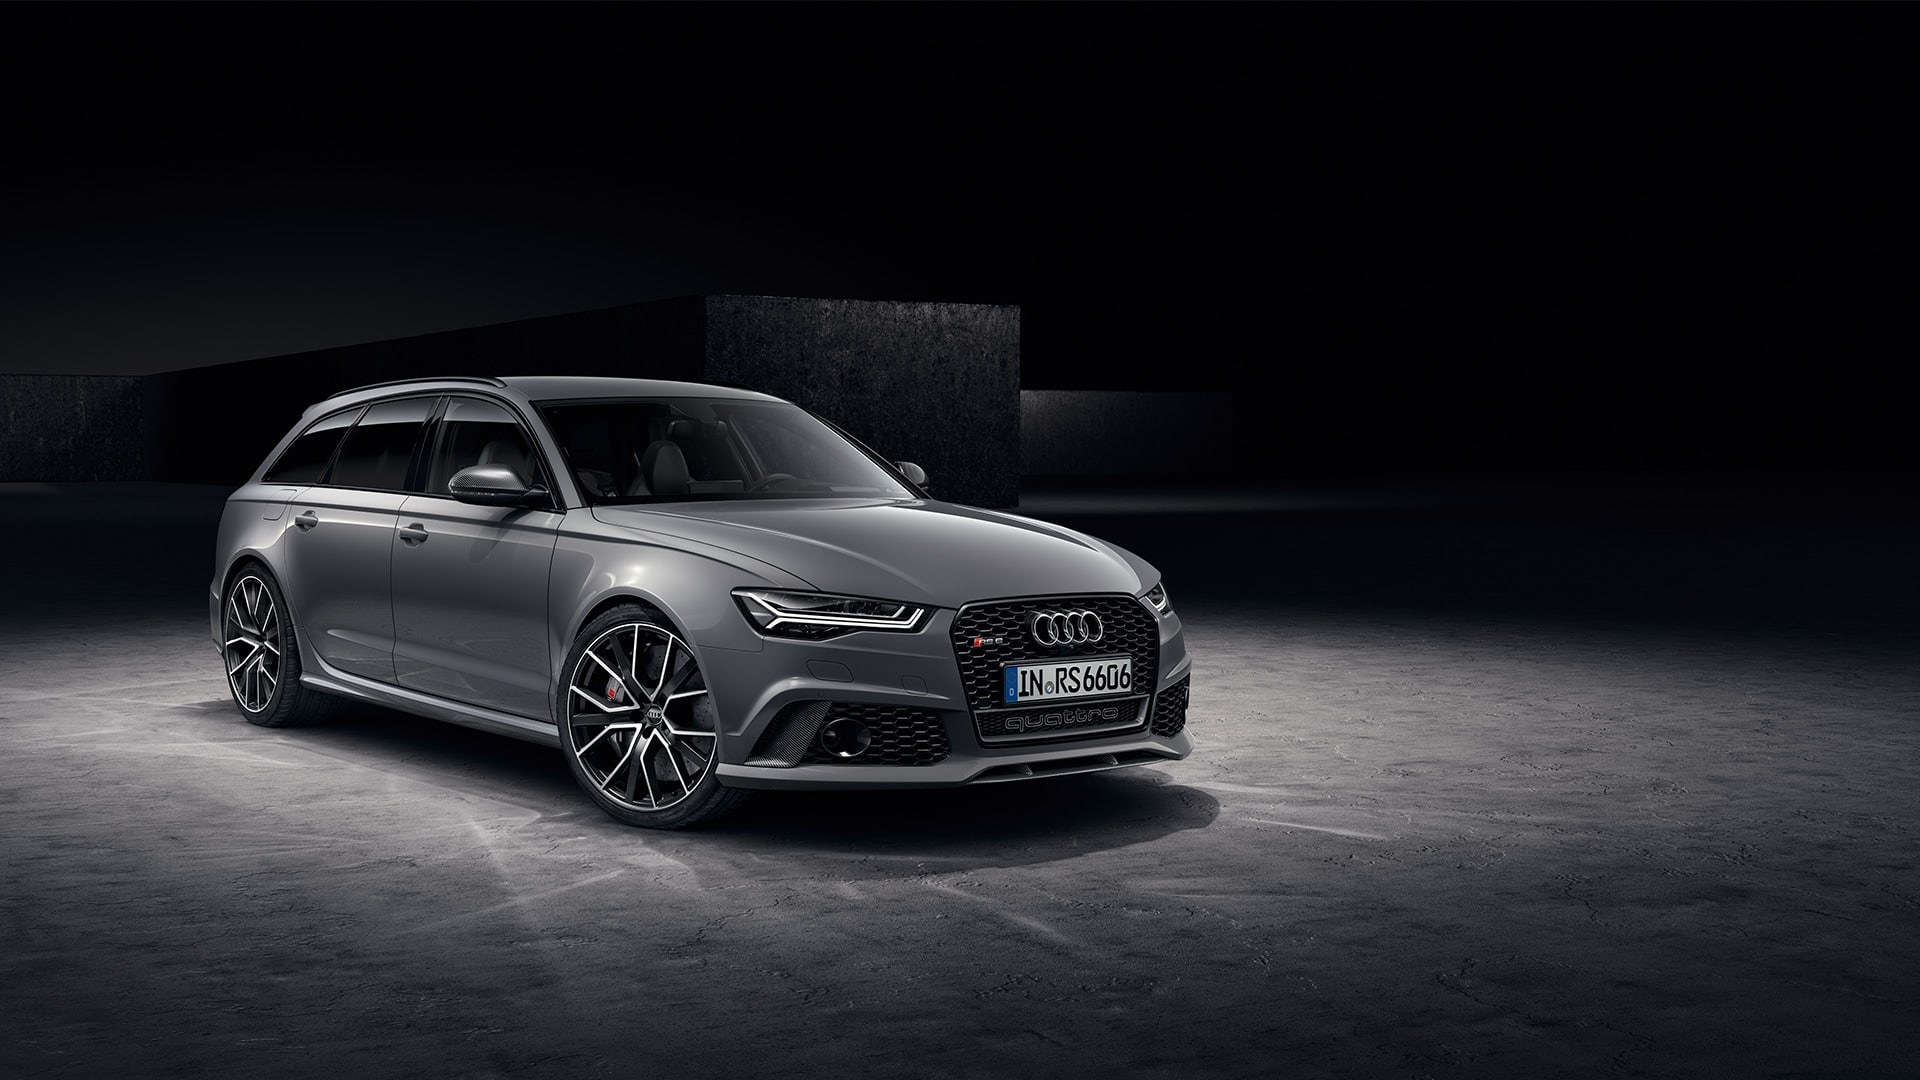 Rs 6 Avant Performance Gt Home Gt Audi Nederland